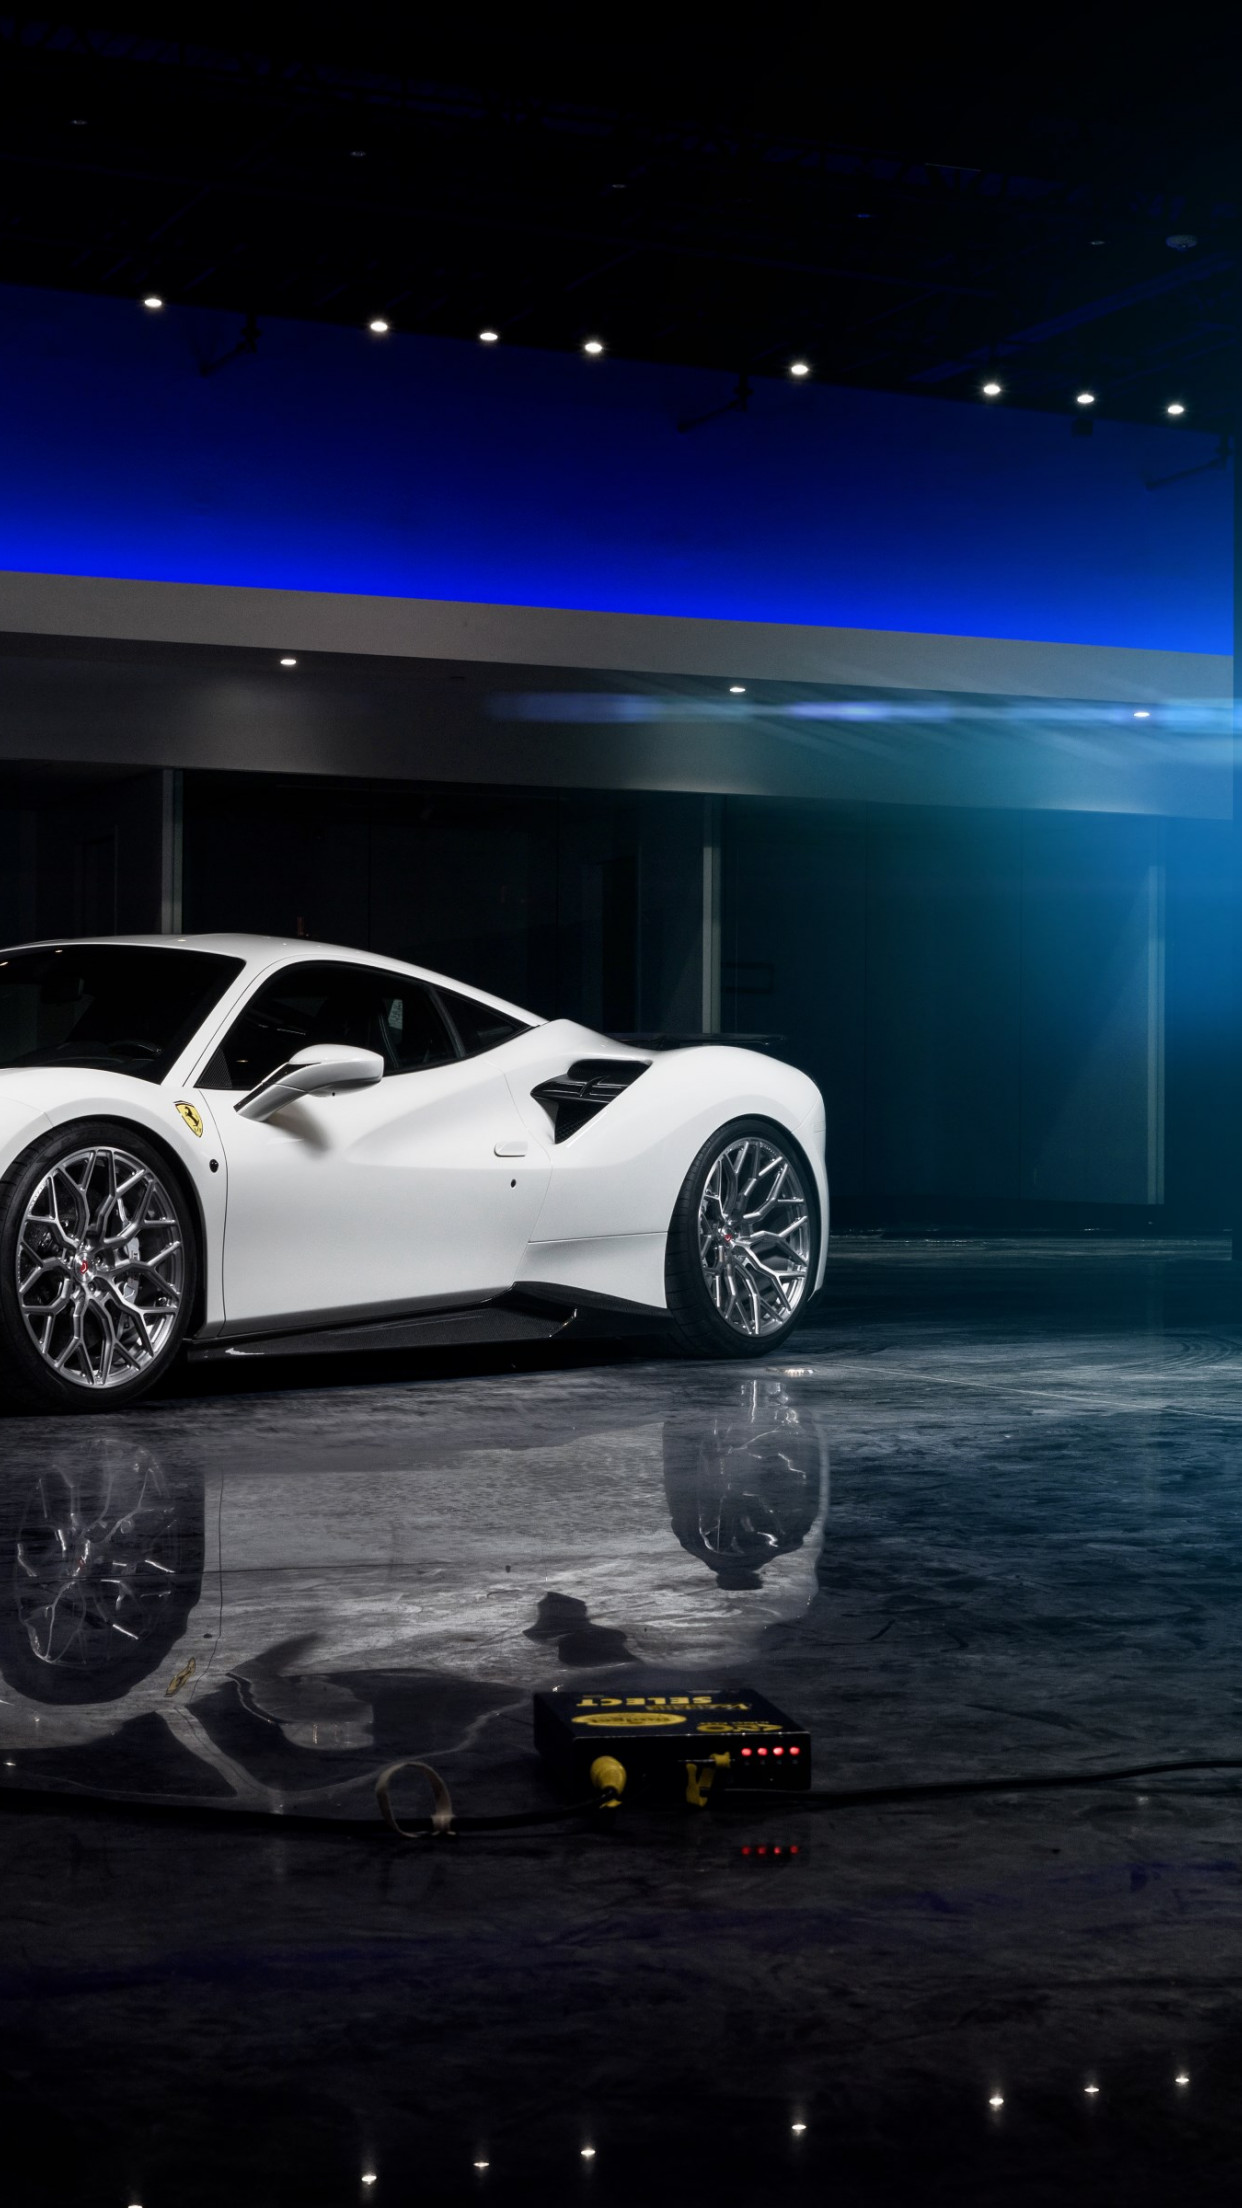 Ferrari 488 with Vossen wheels wallpaper 1242x2208